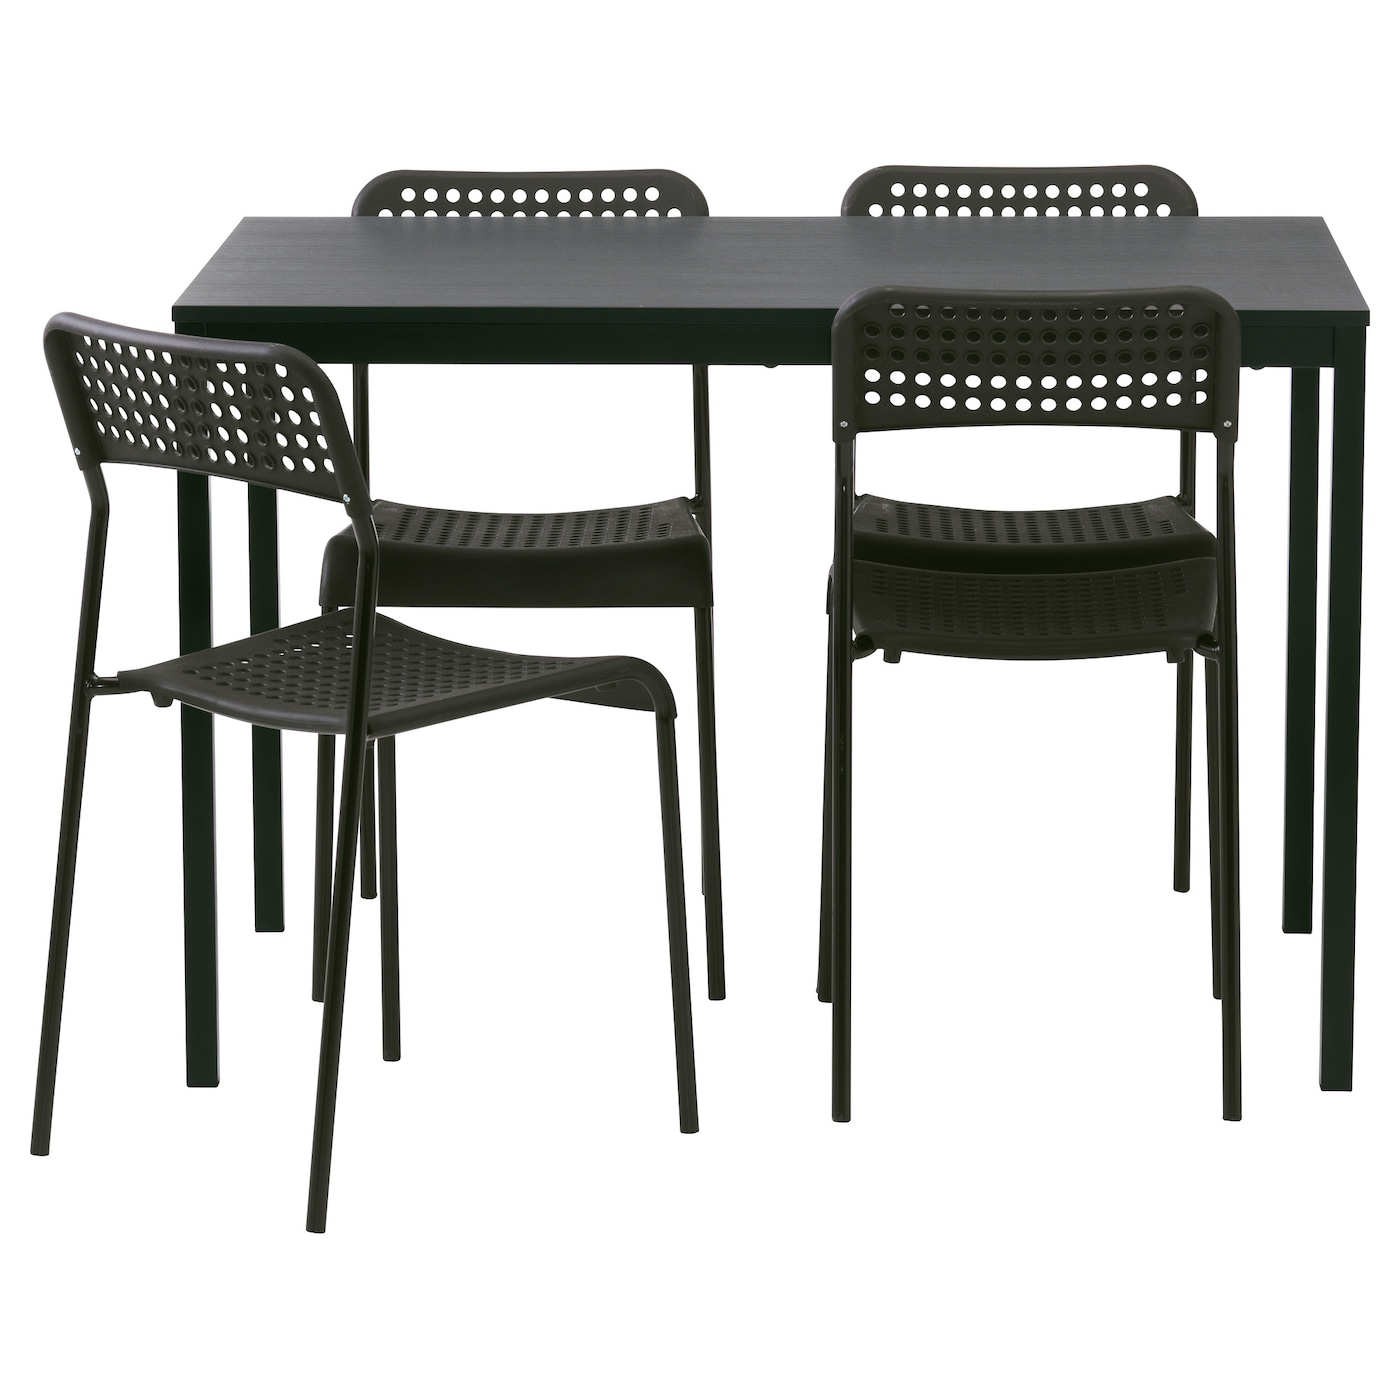 T rend adde table and 4 chairs black 110 cm ikea for Base de table ikea